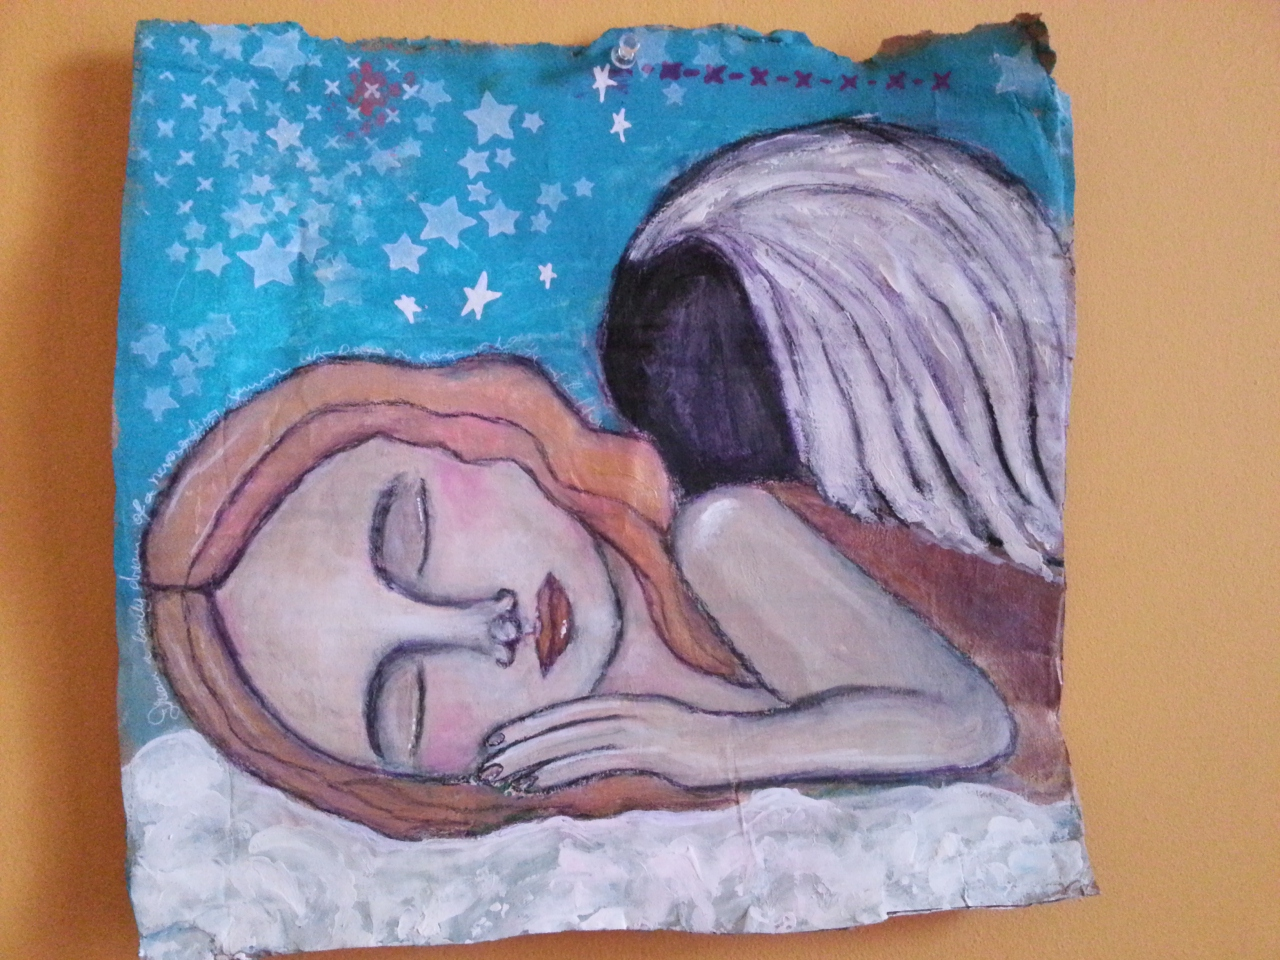 Guardian Angel Acrylic Painting Pam Carriker Inspired - by Cristina Parus @ Creativemag.ro